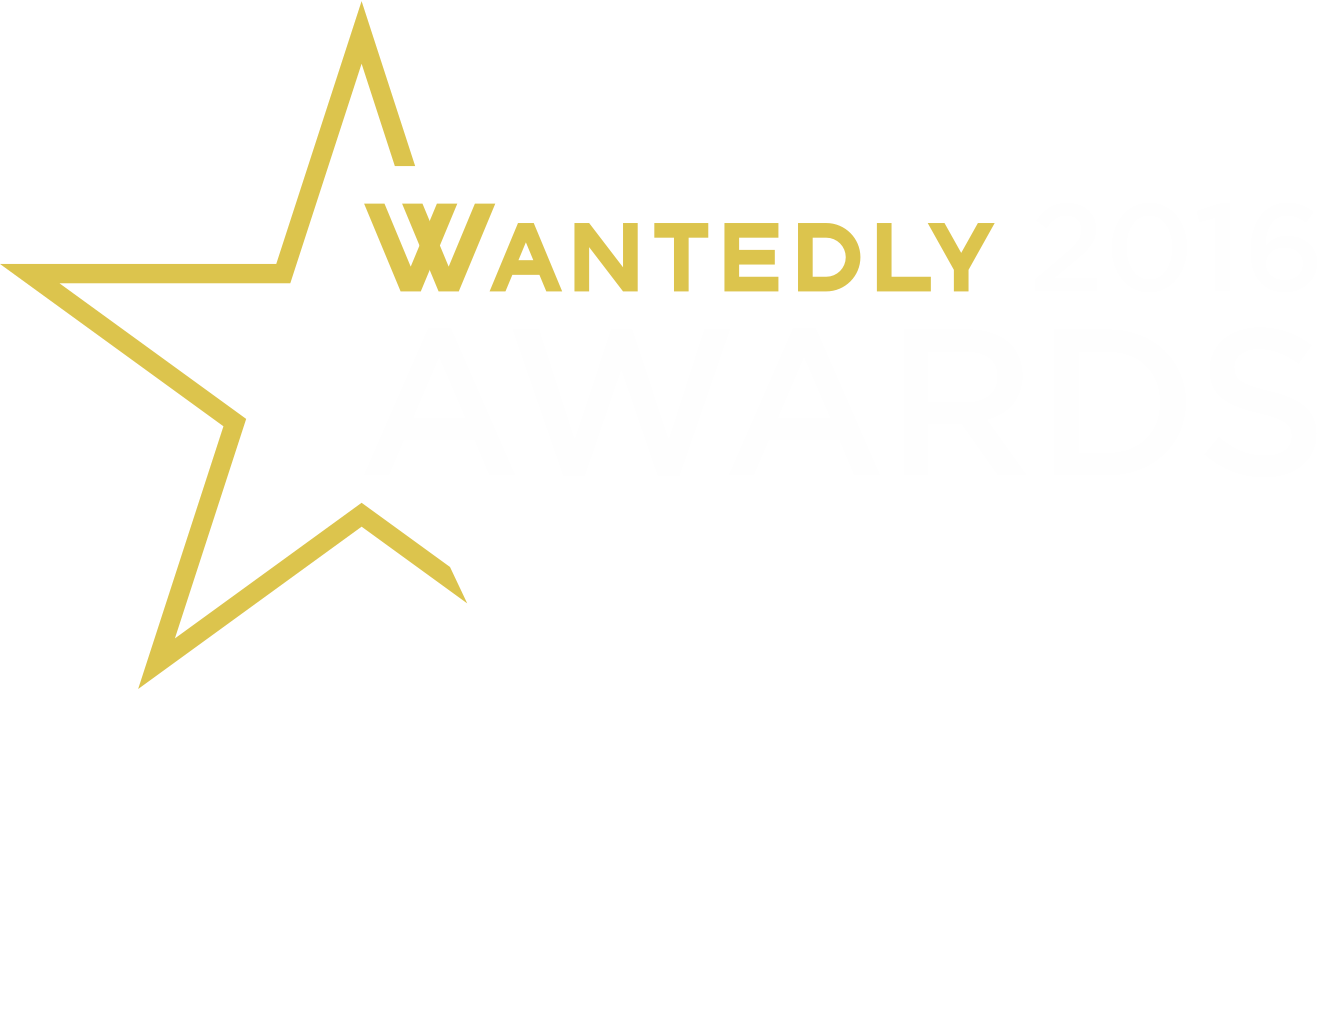 Wantedly Award 2016 | Friday, November 11th, 2016 @ Ebisu Garden Place / The Garden Hall